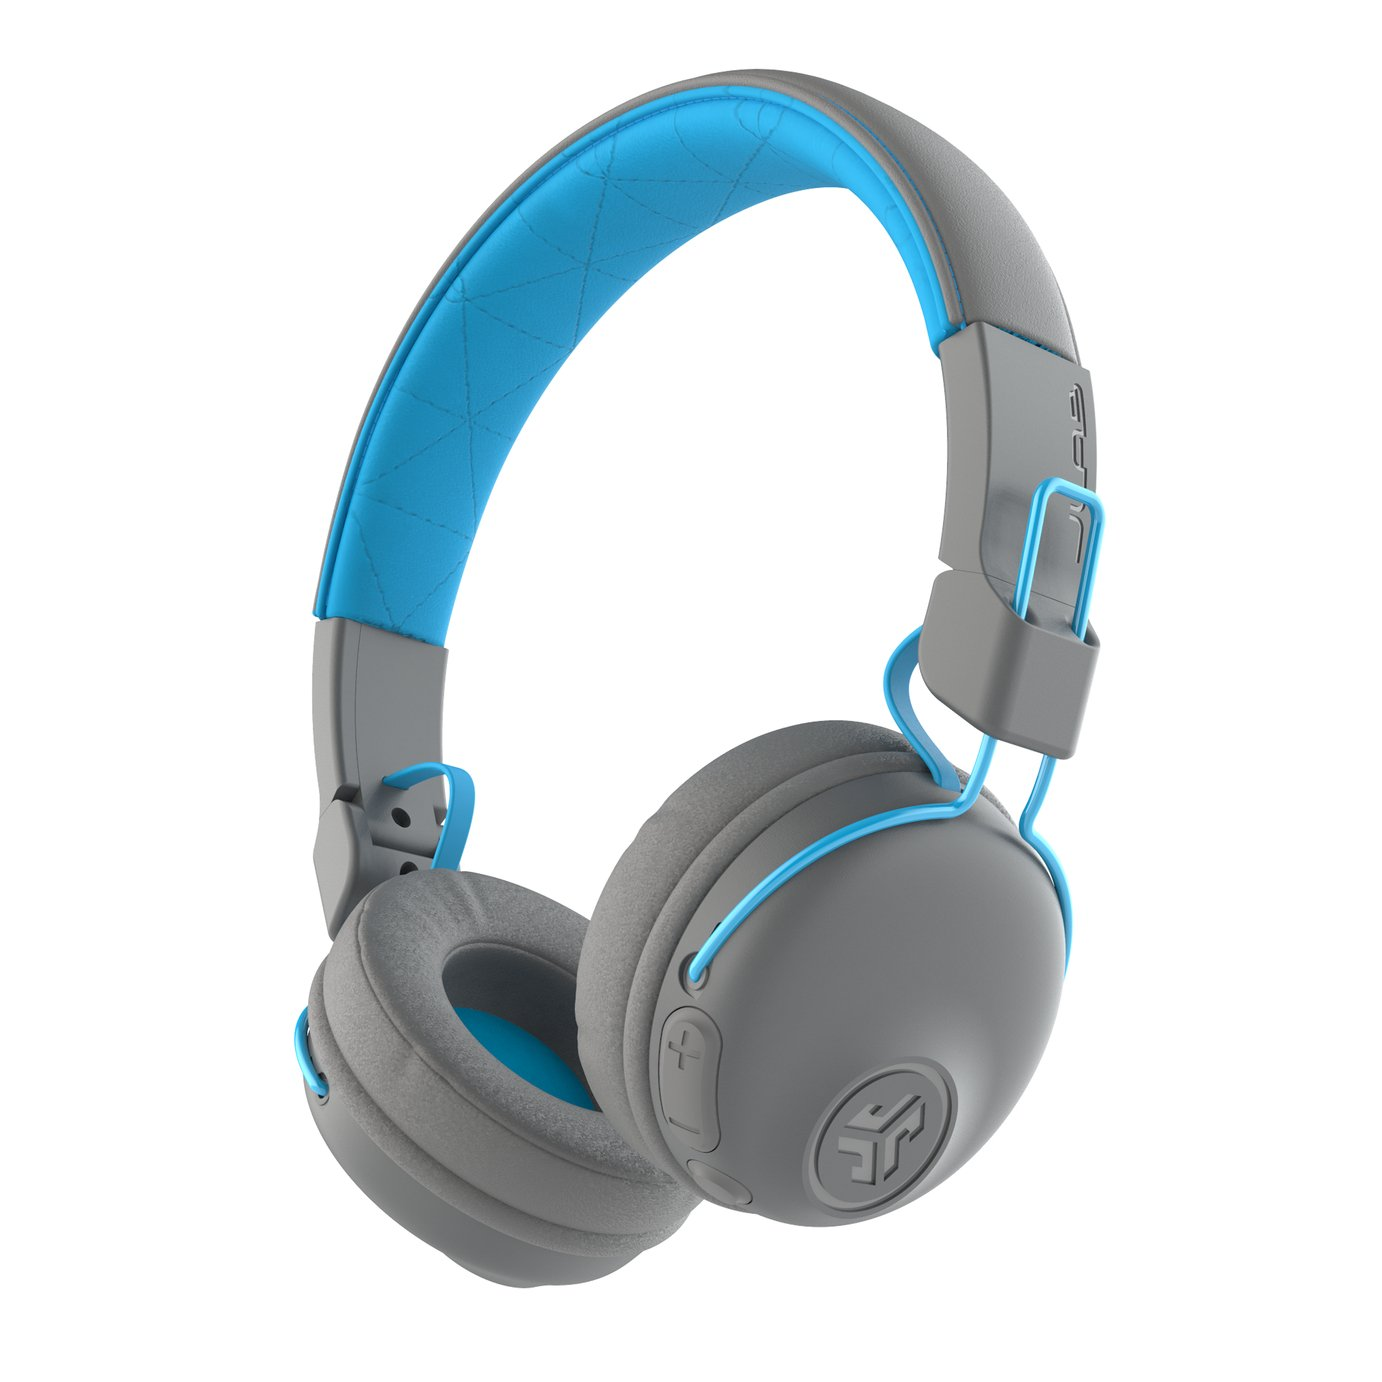 JLAB Studio On-Ear Wireless Headphones - Blue/Grey